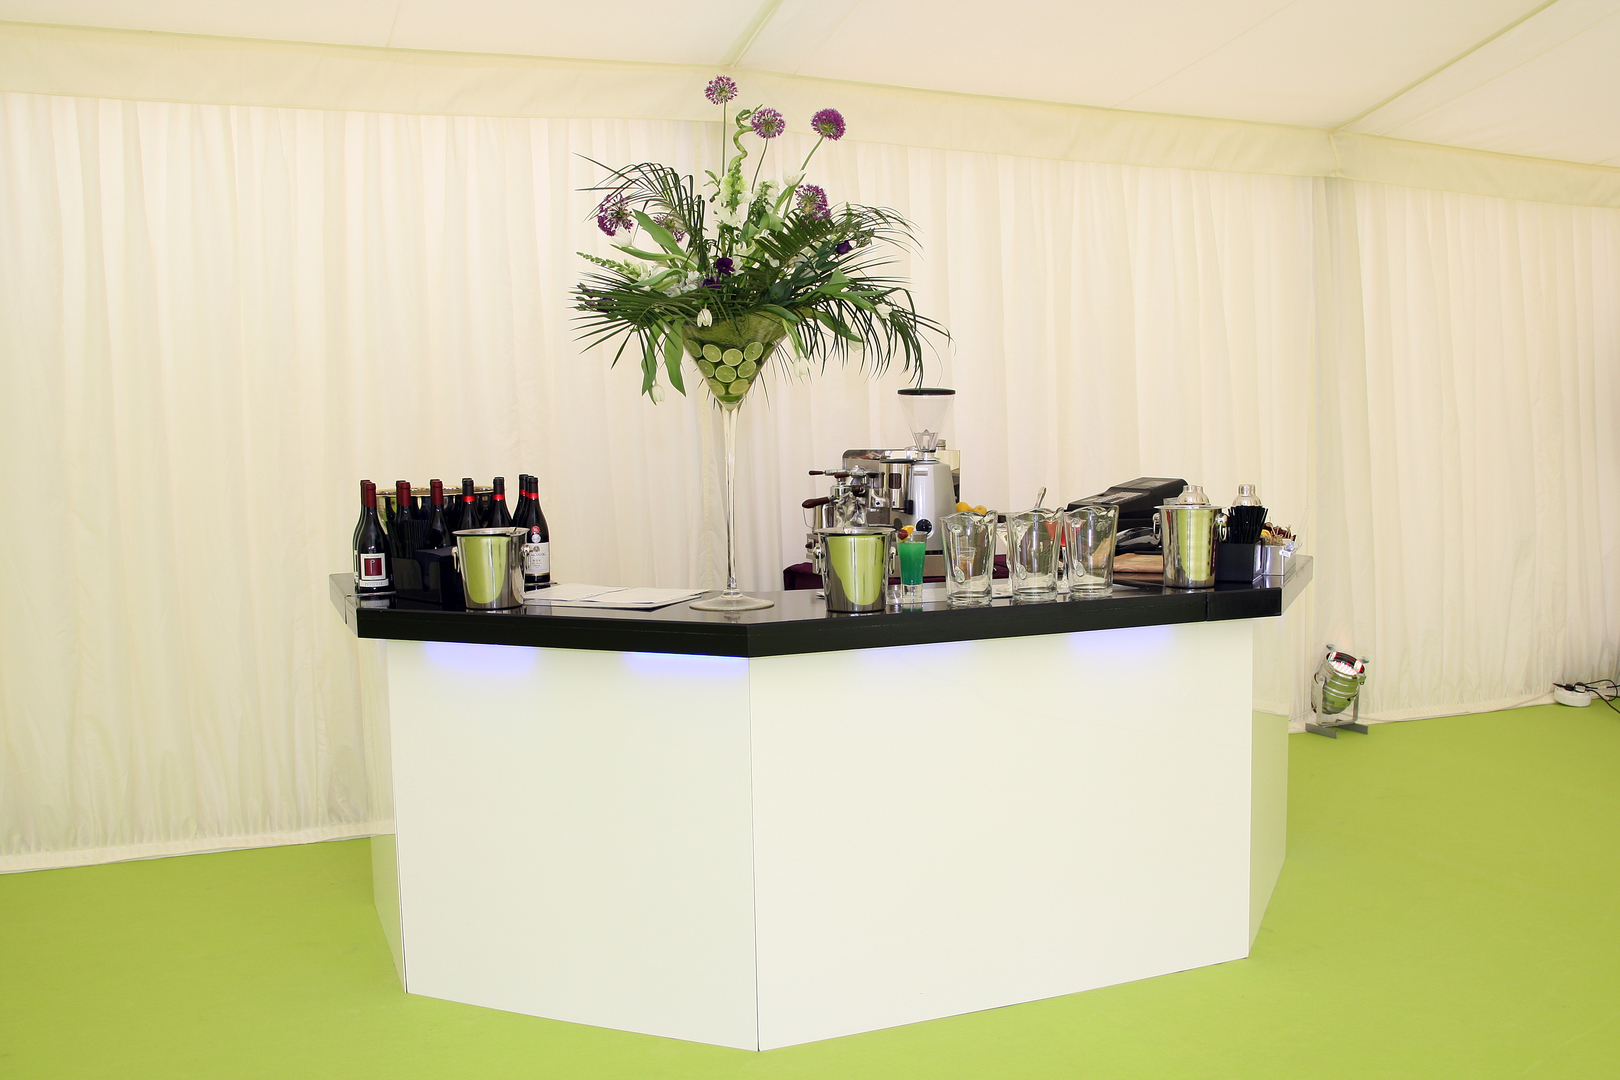 Event equipment to hire for weddings, parties, corporate events ...